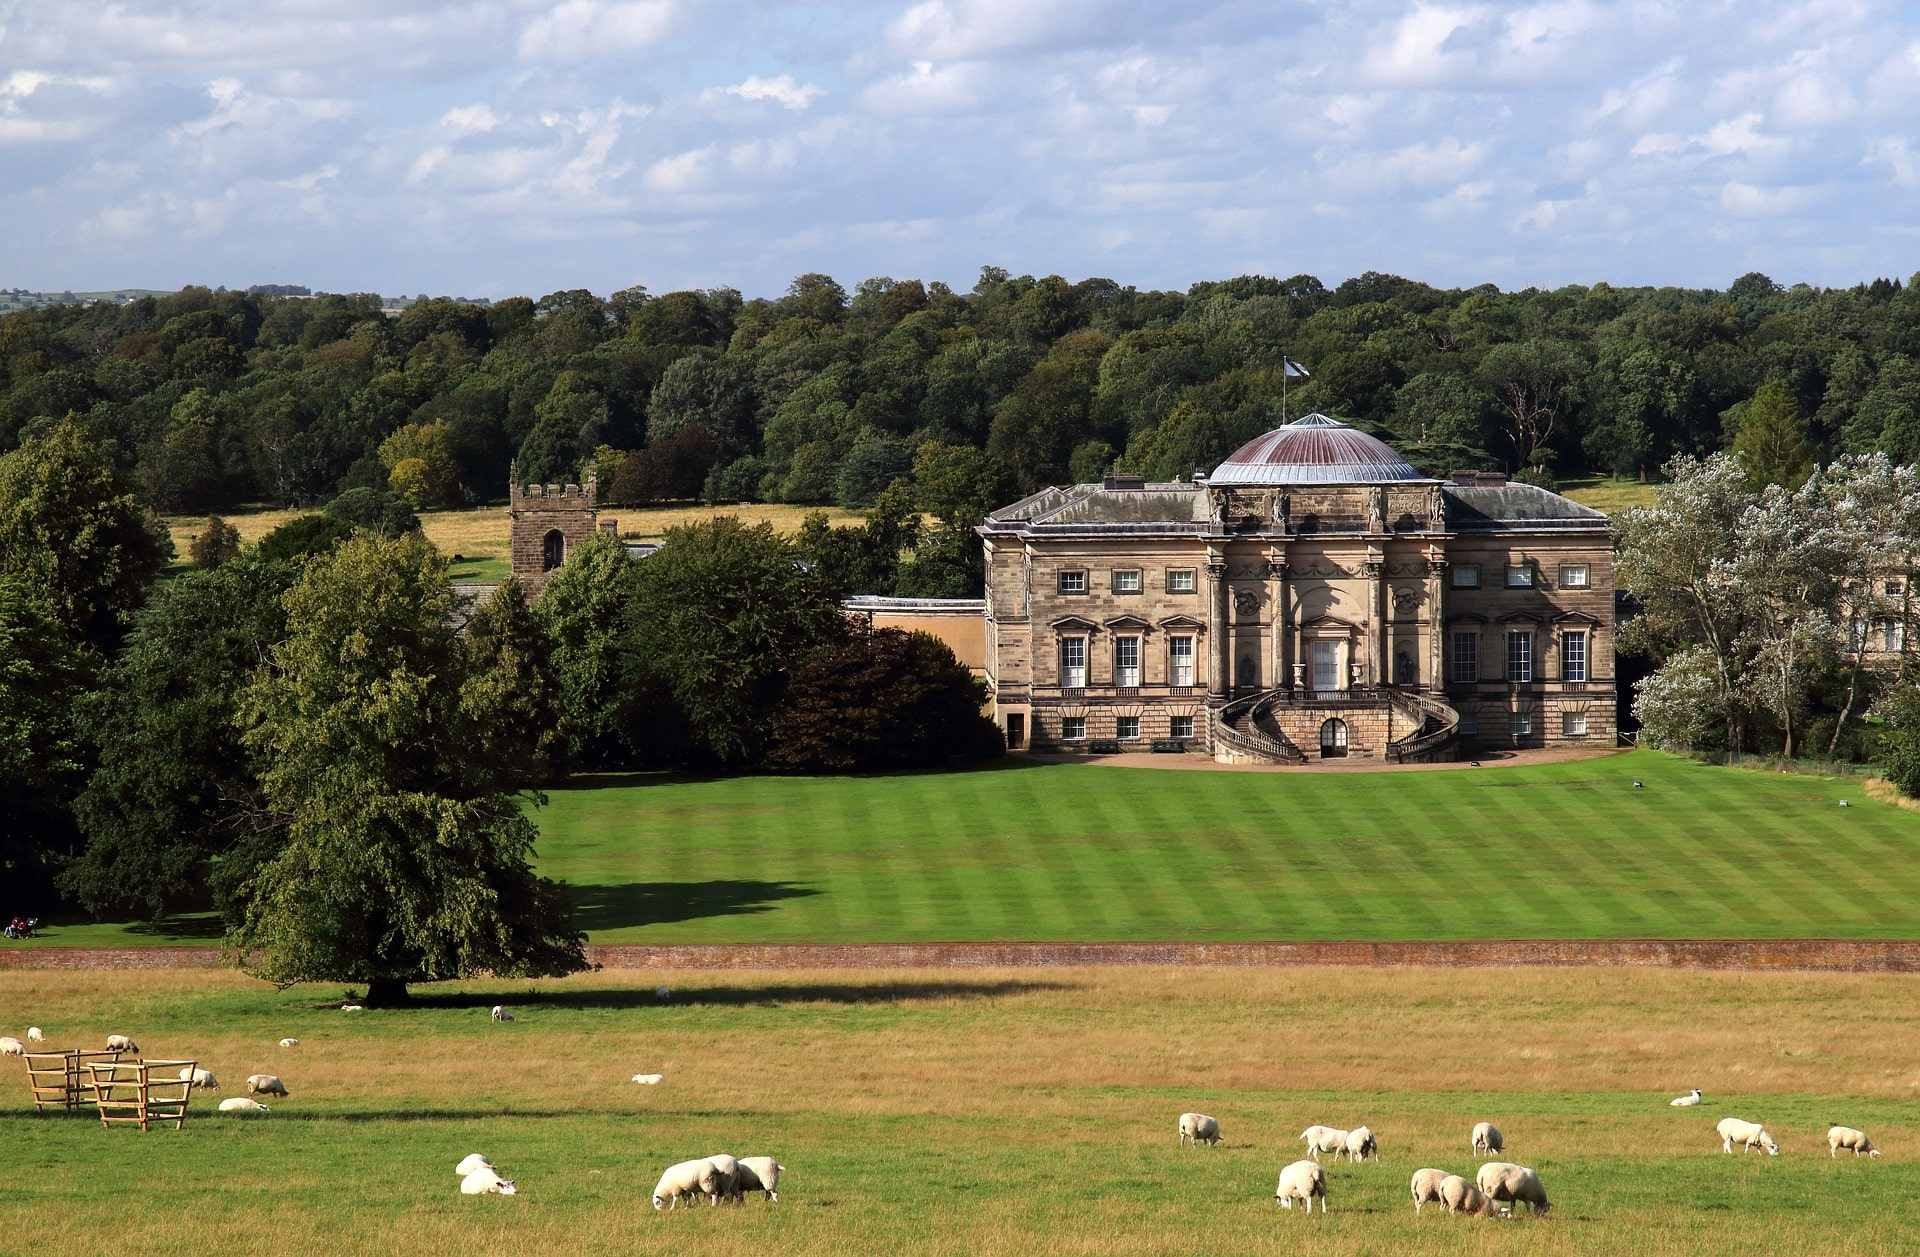 fields-of-sheep-surrounding-kedleston-hall-on-sunny-day-day-trips-from-derby